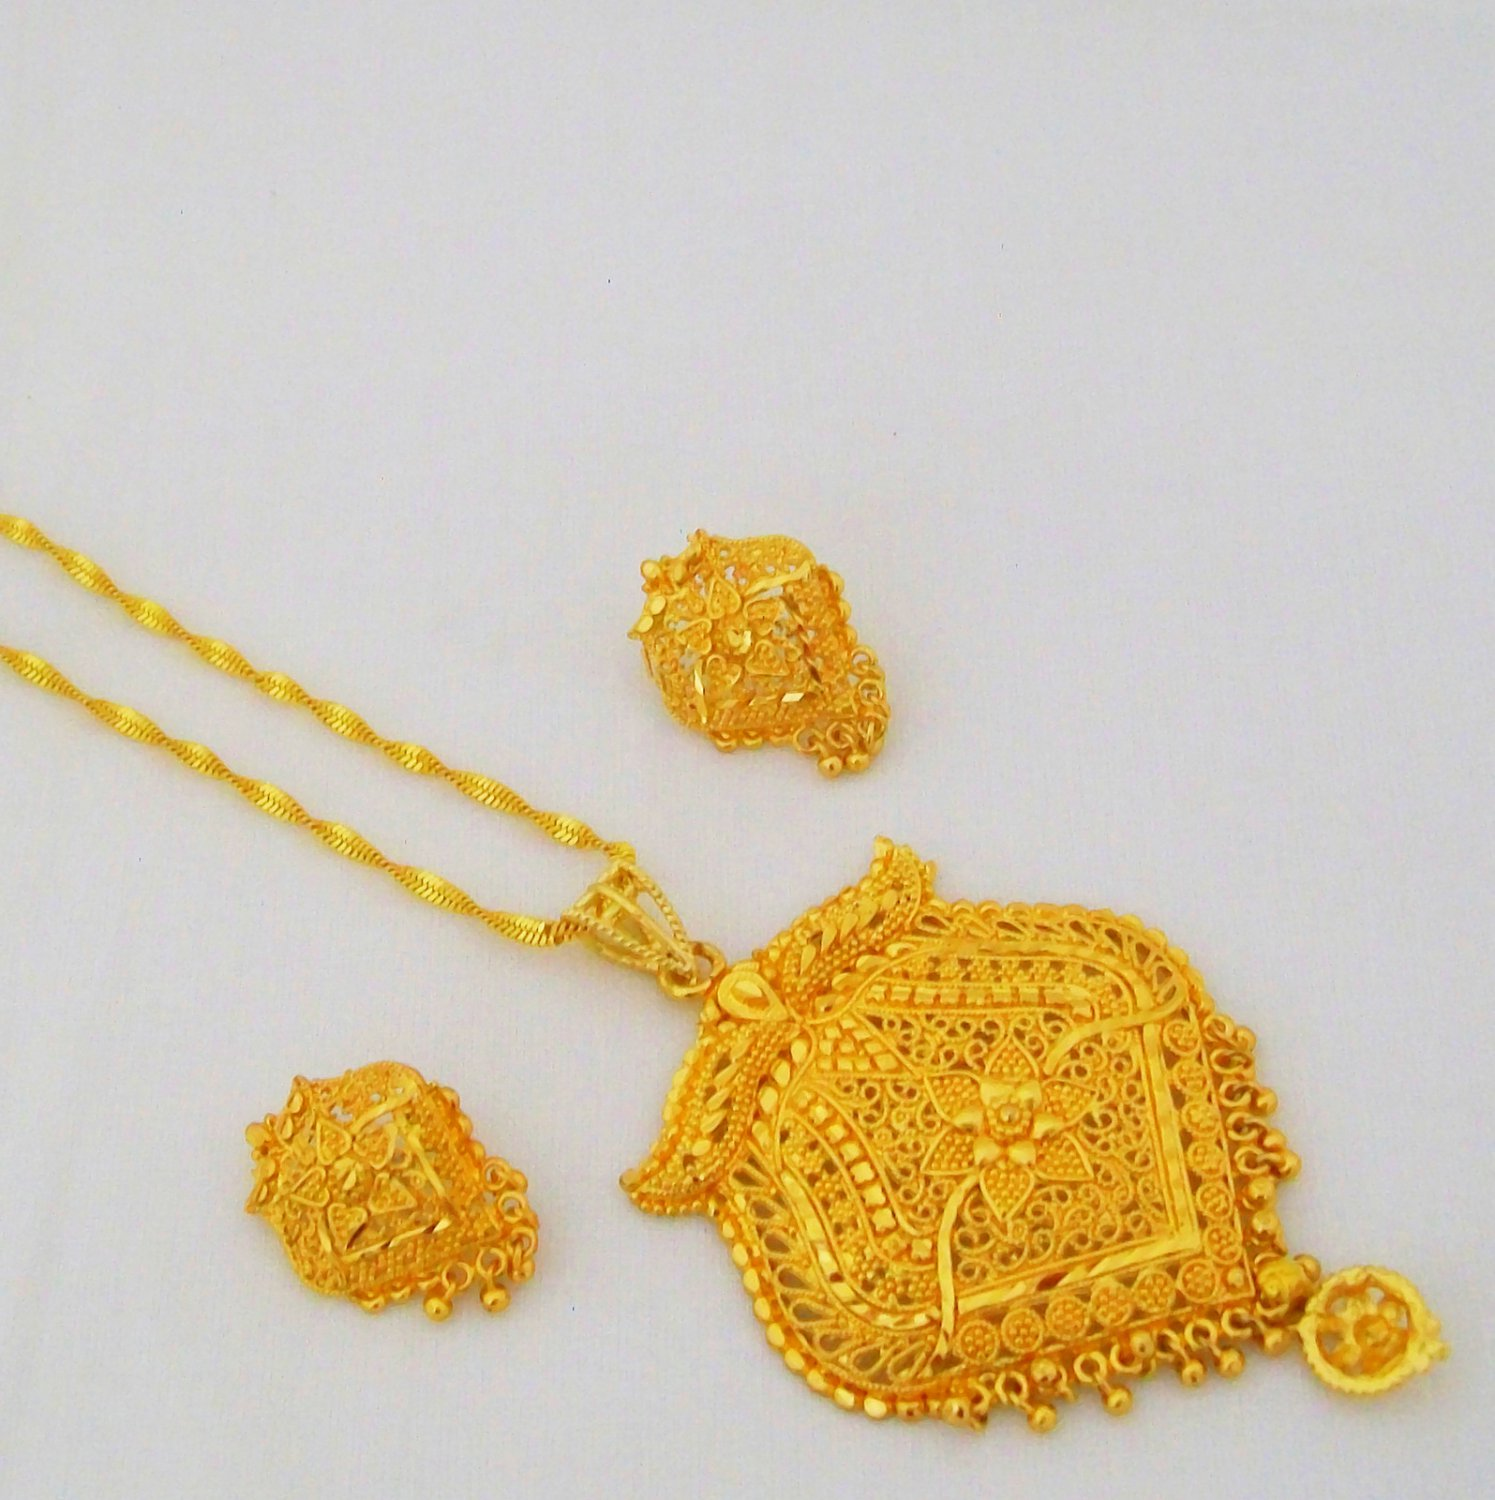 Gold Plated Filigree Cut Work Chain Pendant Necklace Indian Ethnic Jewellery Set